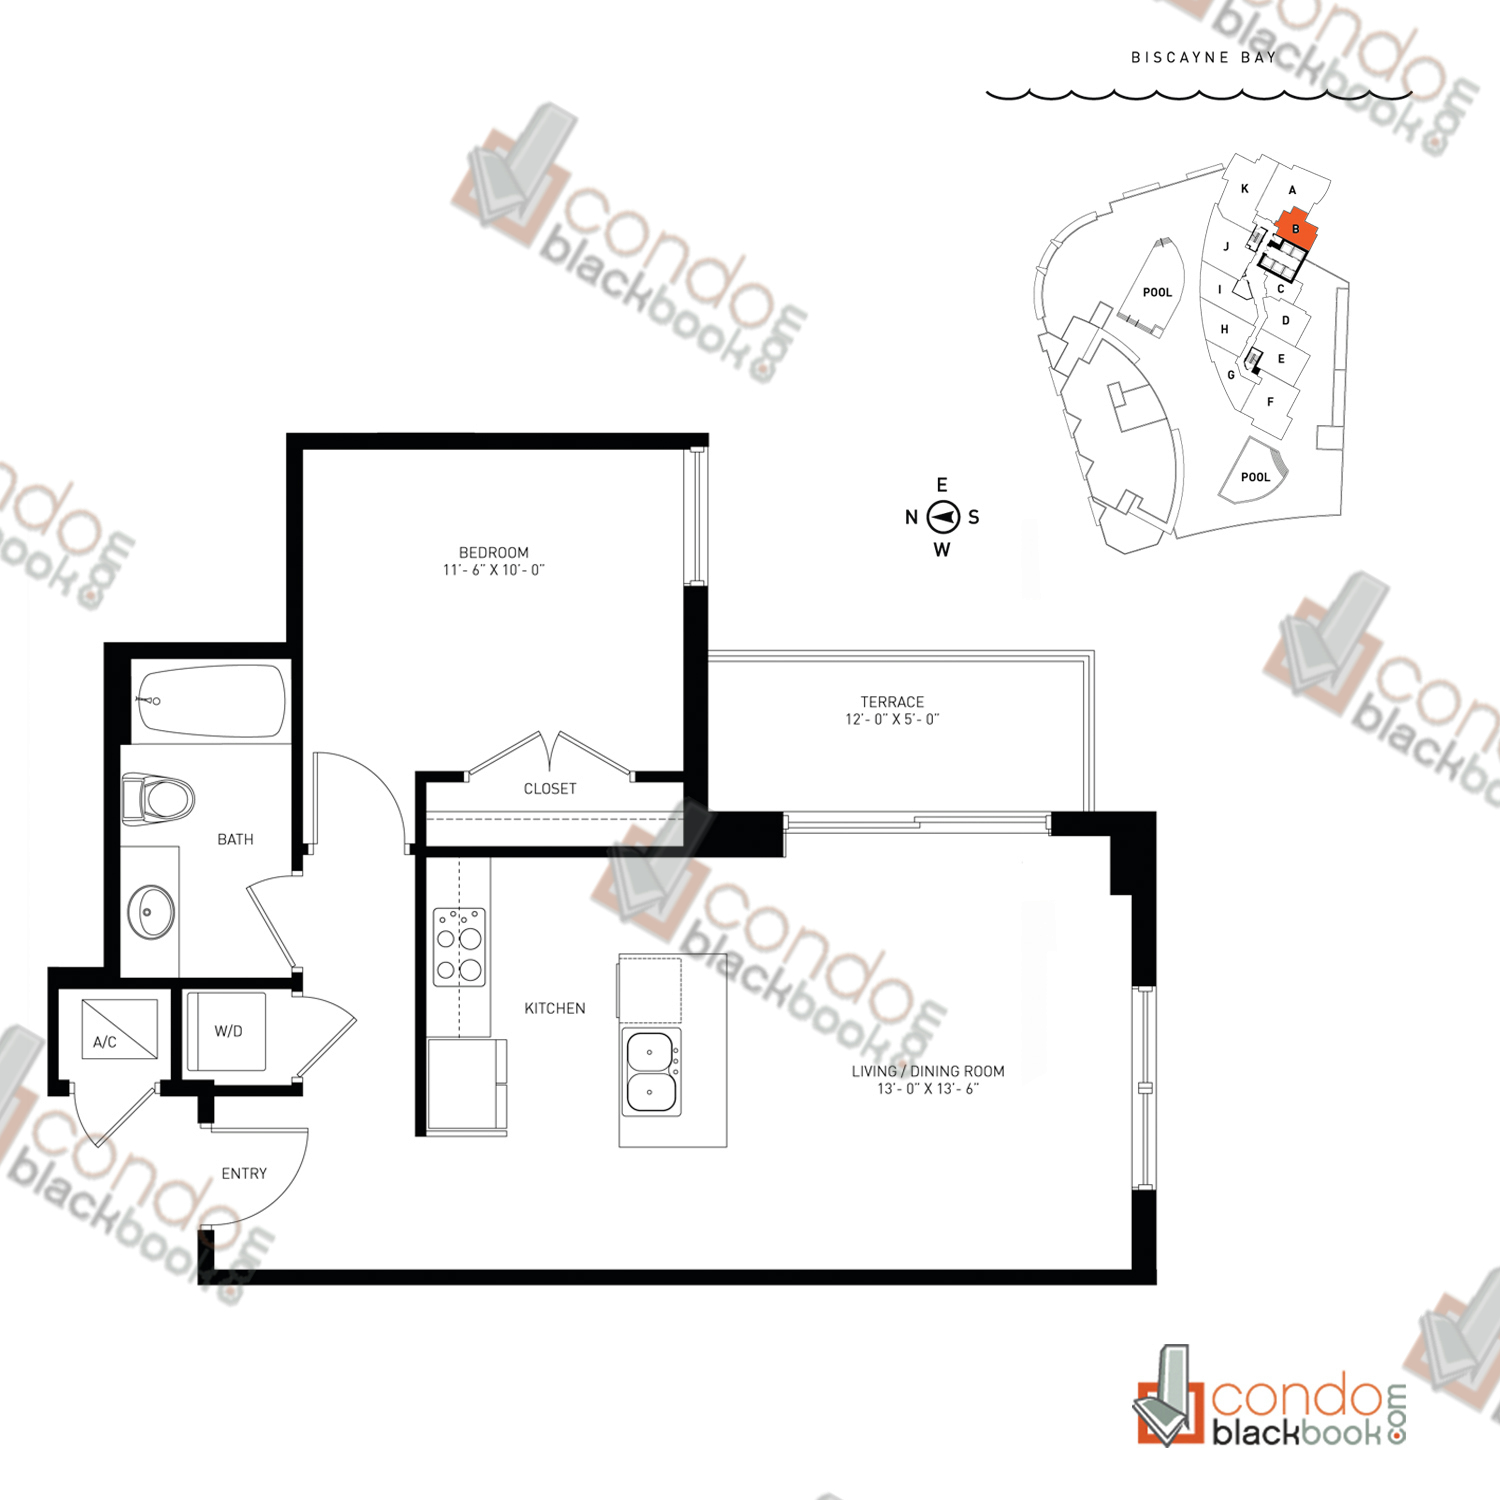 Floor plan for Quantum on the Bay Edgewater Miami, model Residence_B, line South Tower - 03, 1/1 bedrooms, 651 sq ft